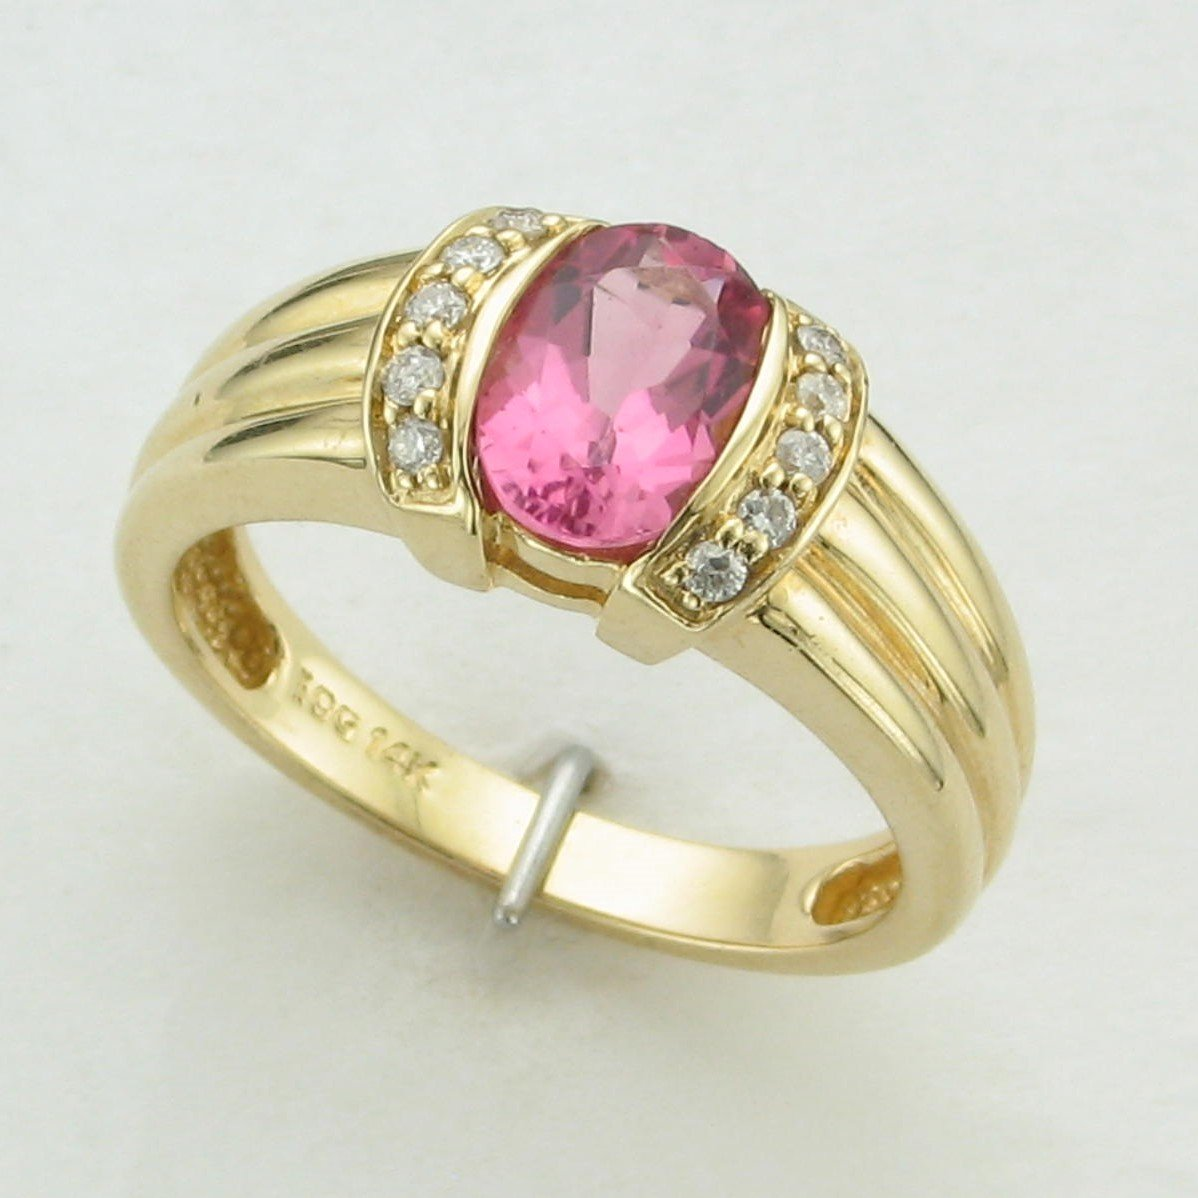 1.20ct  Pink Tourmaline & Diamond Ring set in 14K Yellow Gold